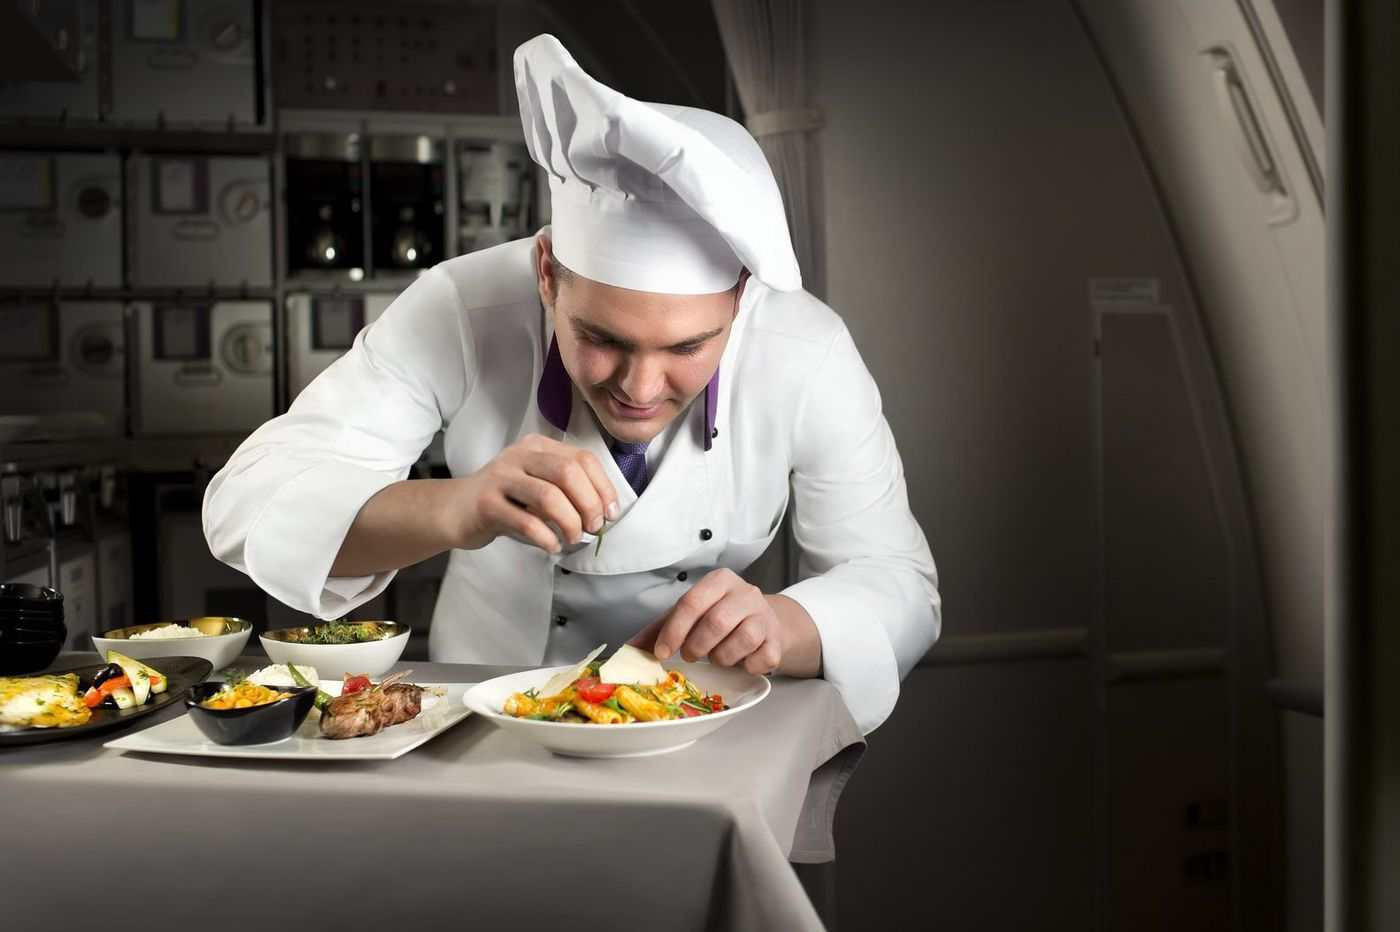 'Flying chefs' in business class